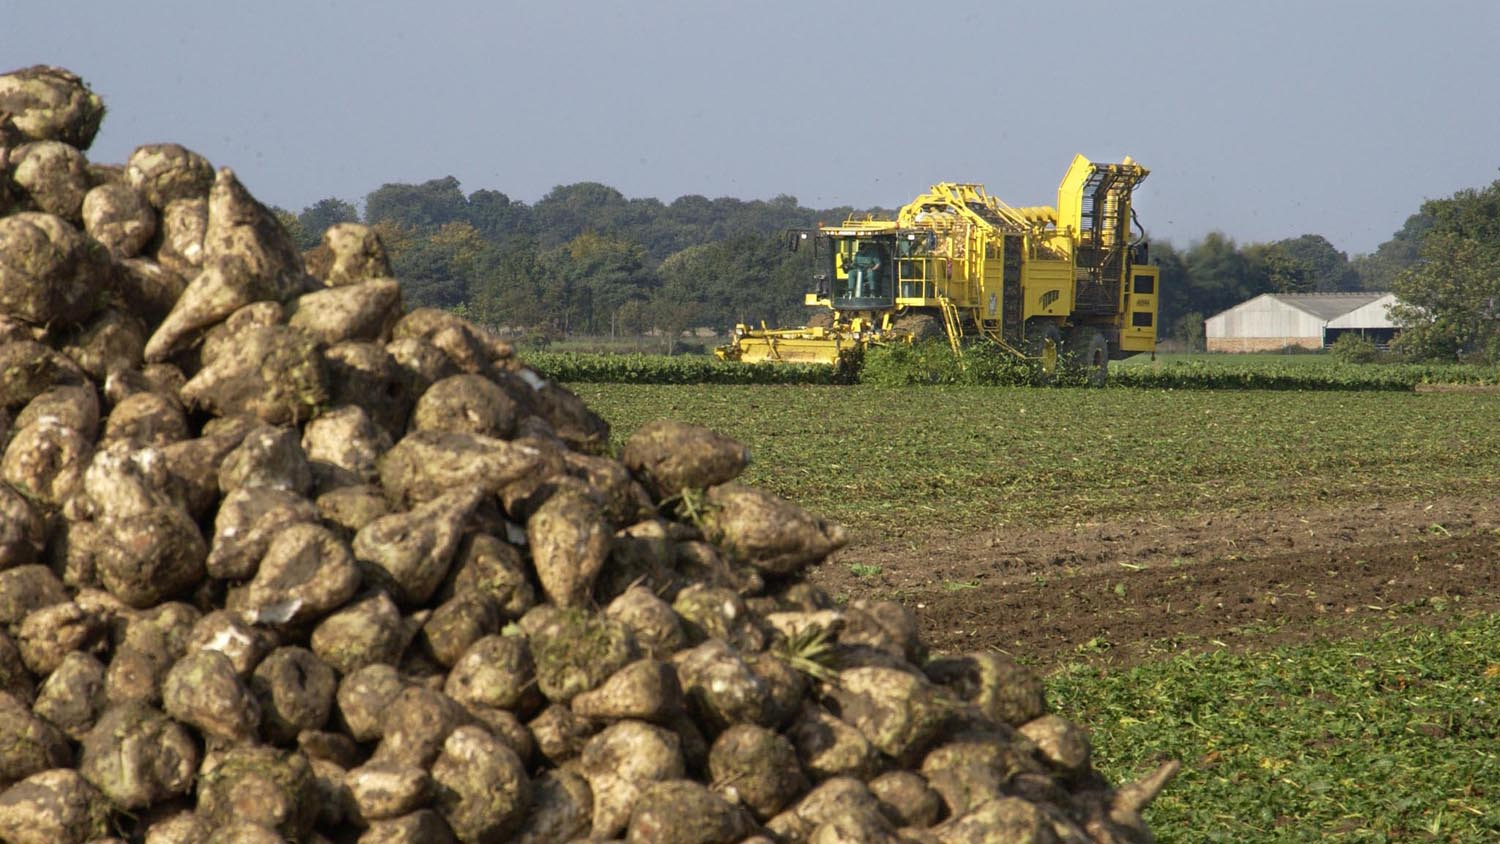 'Bigger than expected' beet crop prolongs campaign